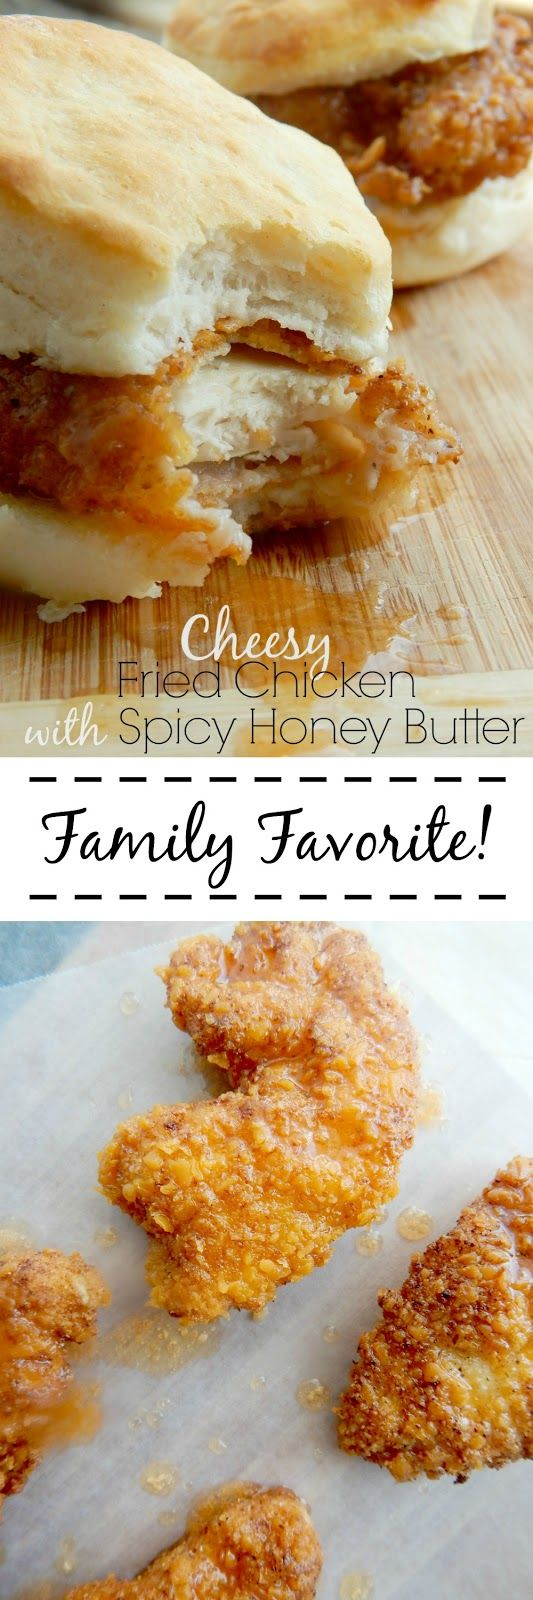 cheesy fried chicken with spicy honey butter (sweetandsavoryfood.com) (water recipes chicken breasts)